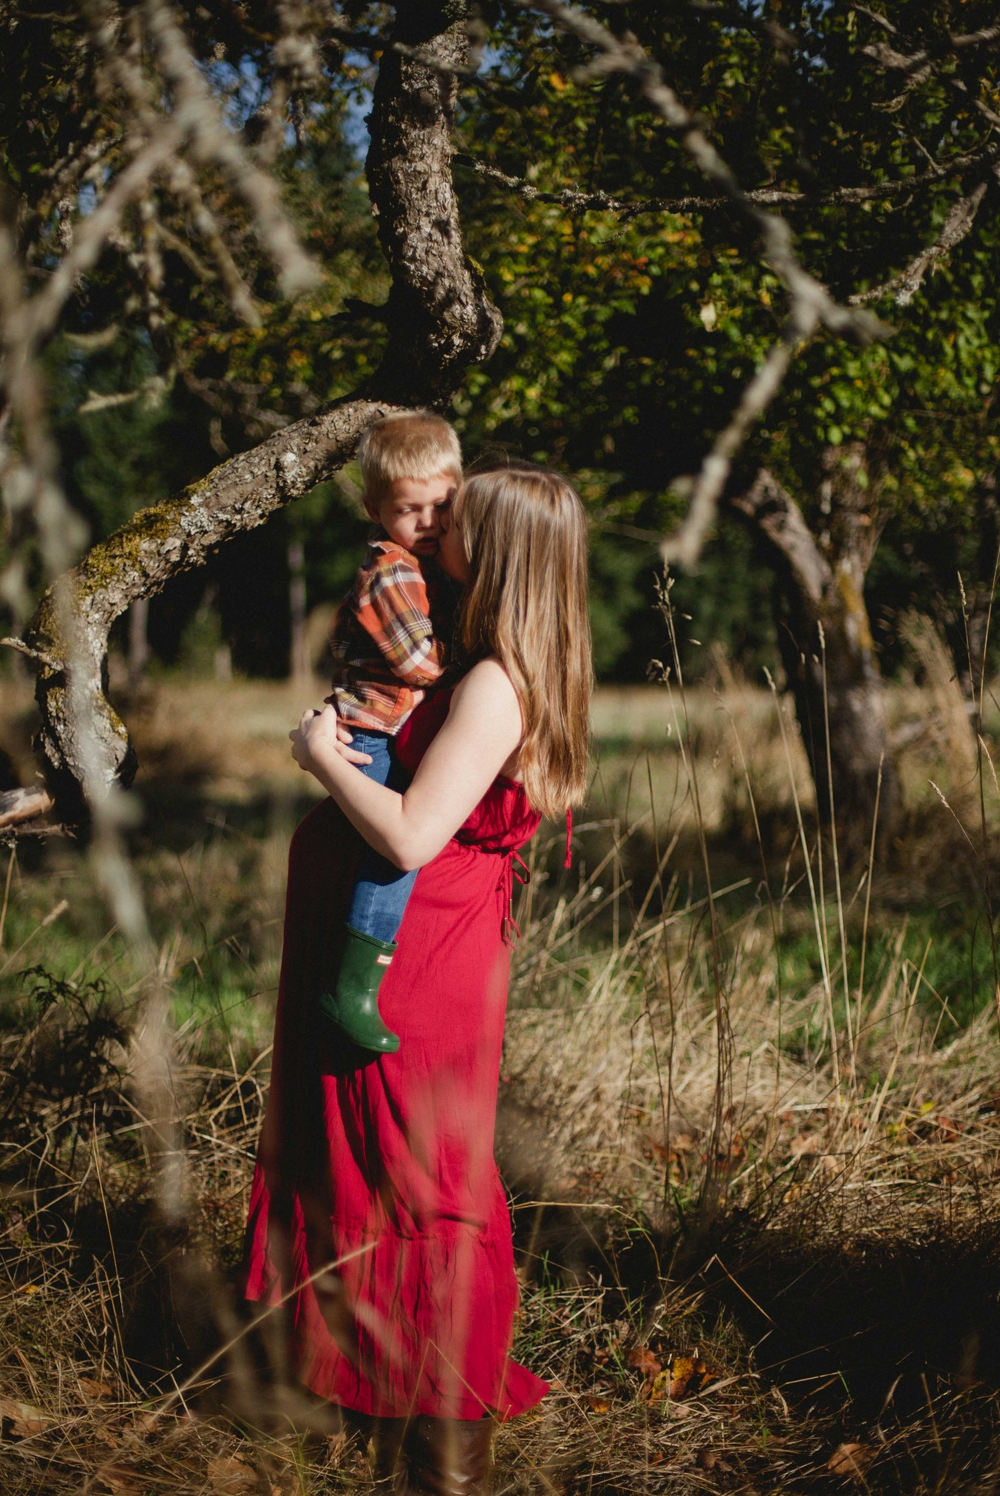 enumclaw_fine_art_maternity_photographer_seattle 4.jpg